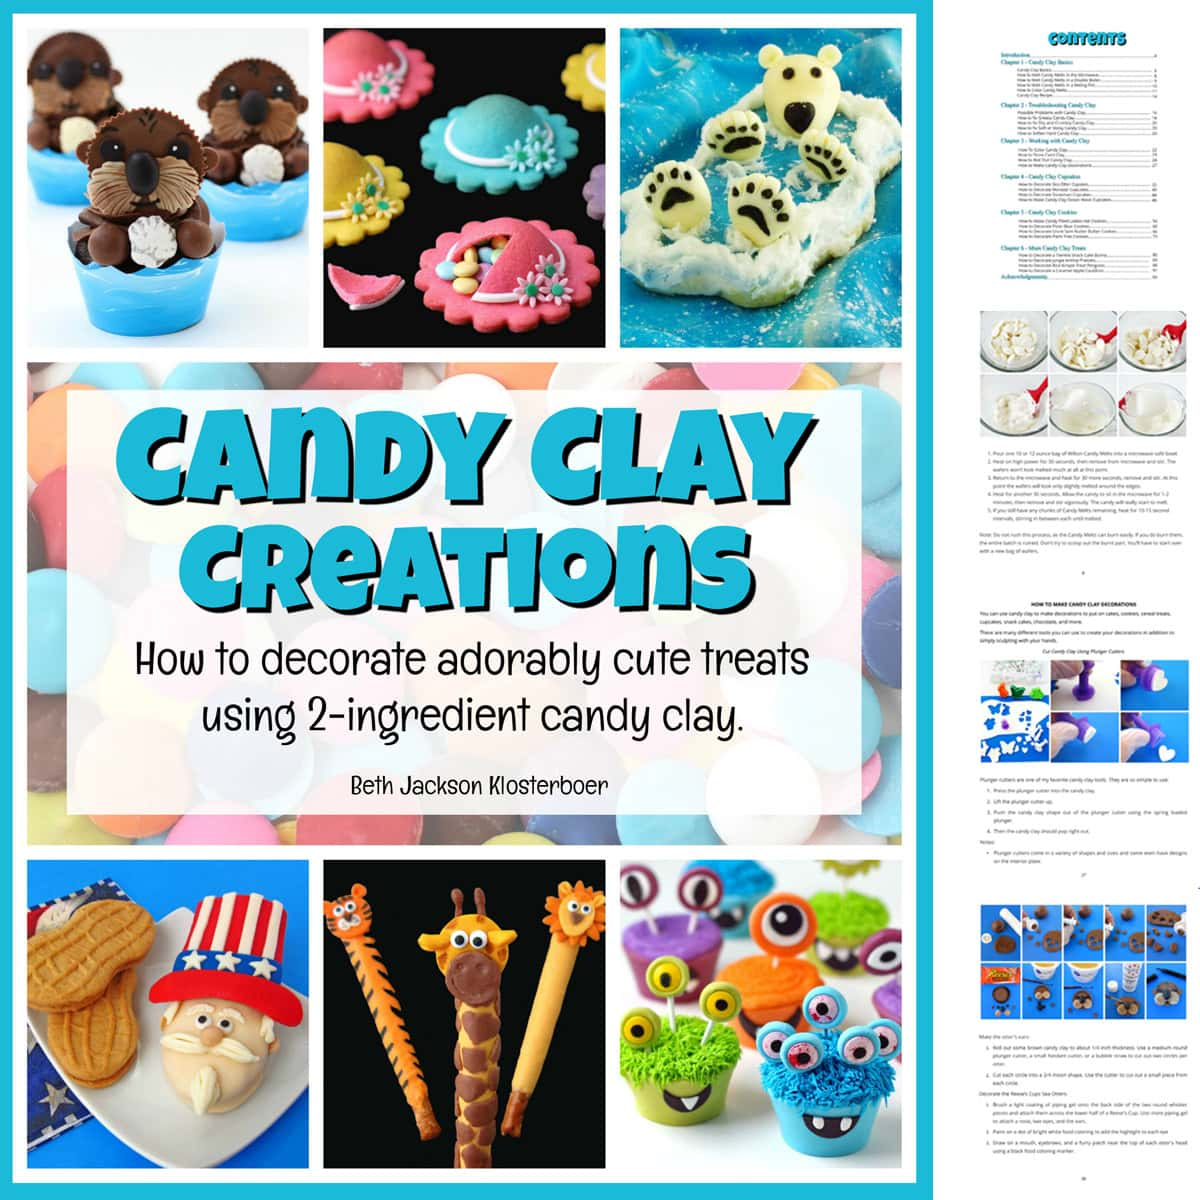 Candy Clay Creations Cookbook featuring modeling chocolate recipes and decorating tips